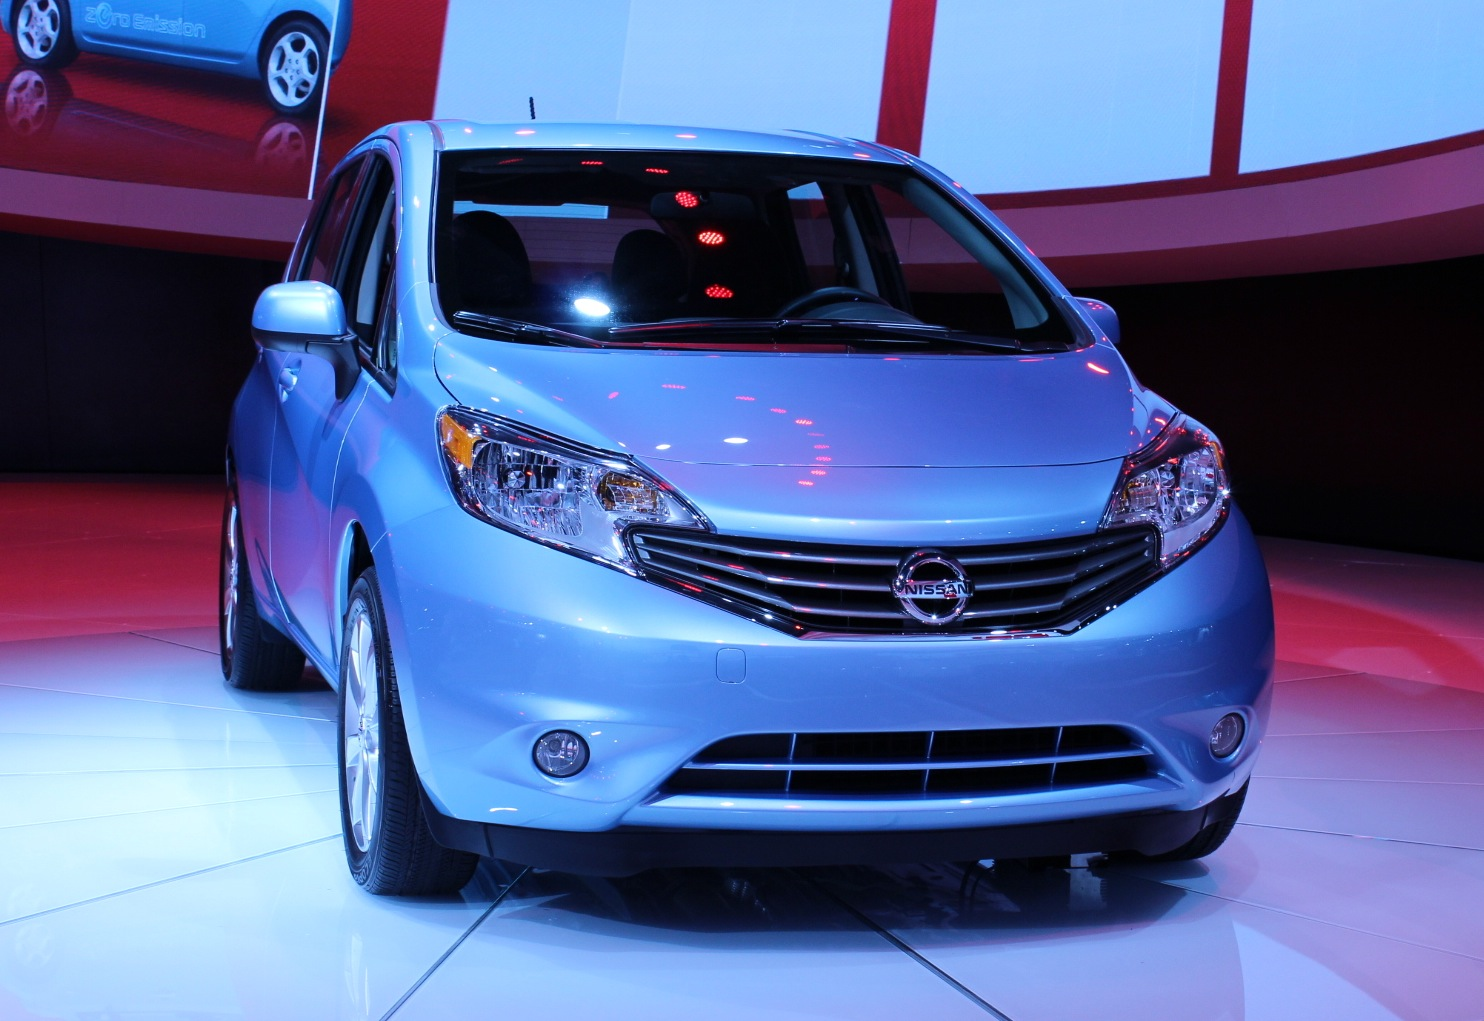 2014 nissan versa note priced 14 780 big tech small package. Black Bedroom Furniture Sets. Home Design Ideas